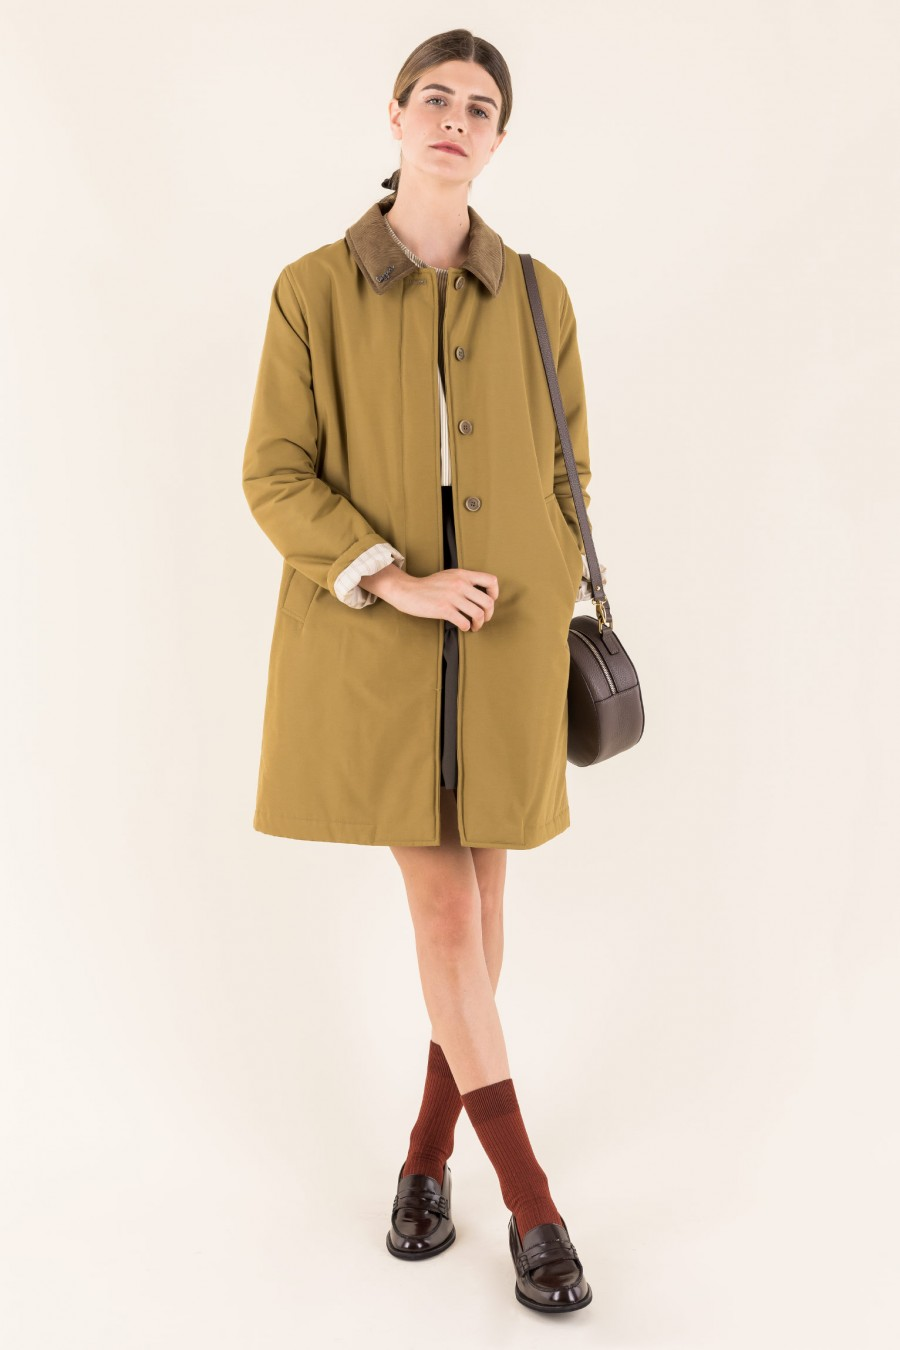 Beige overcoat with light padding and linings